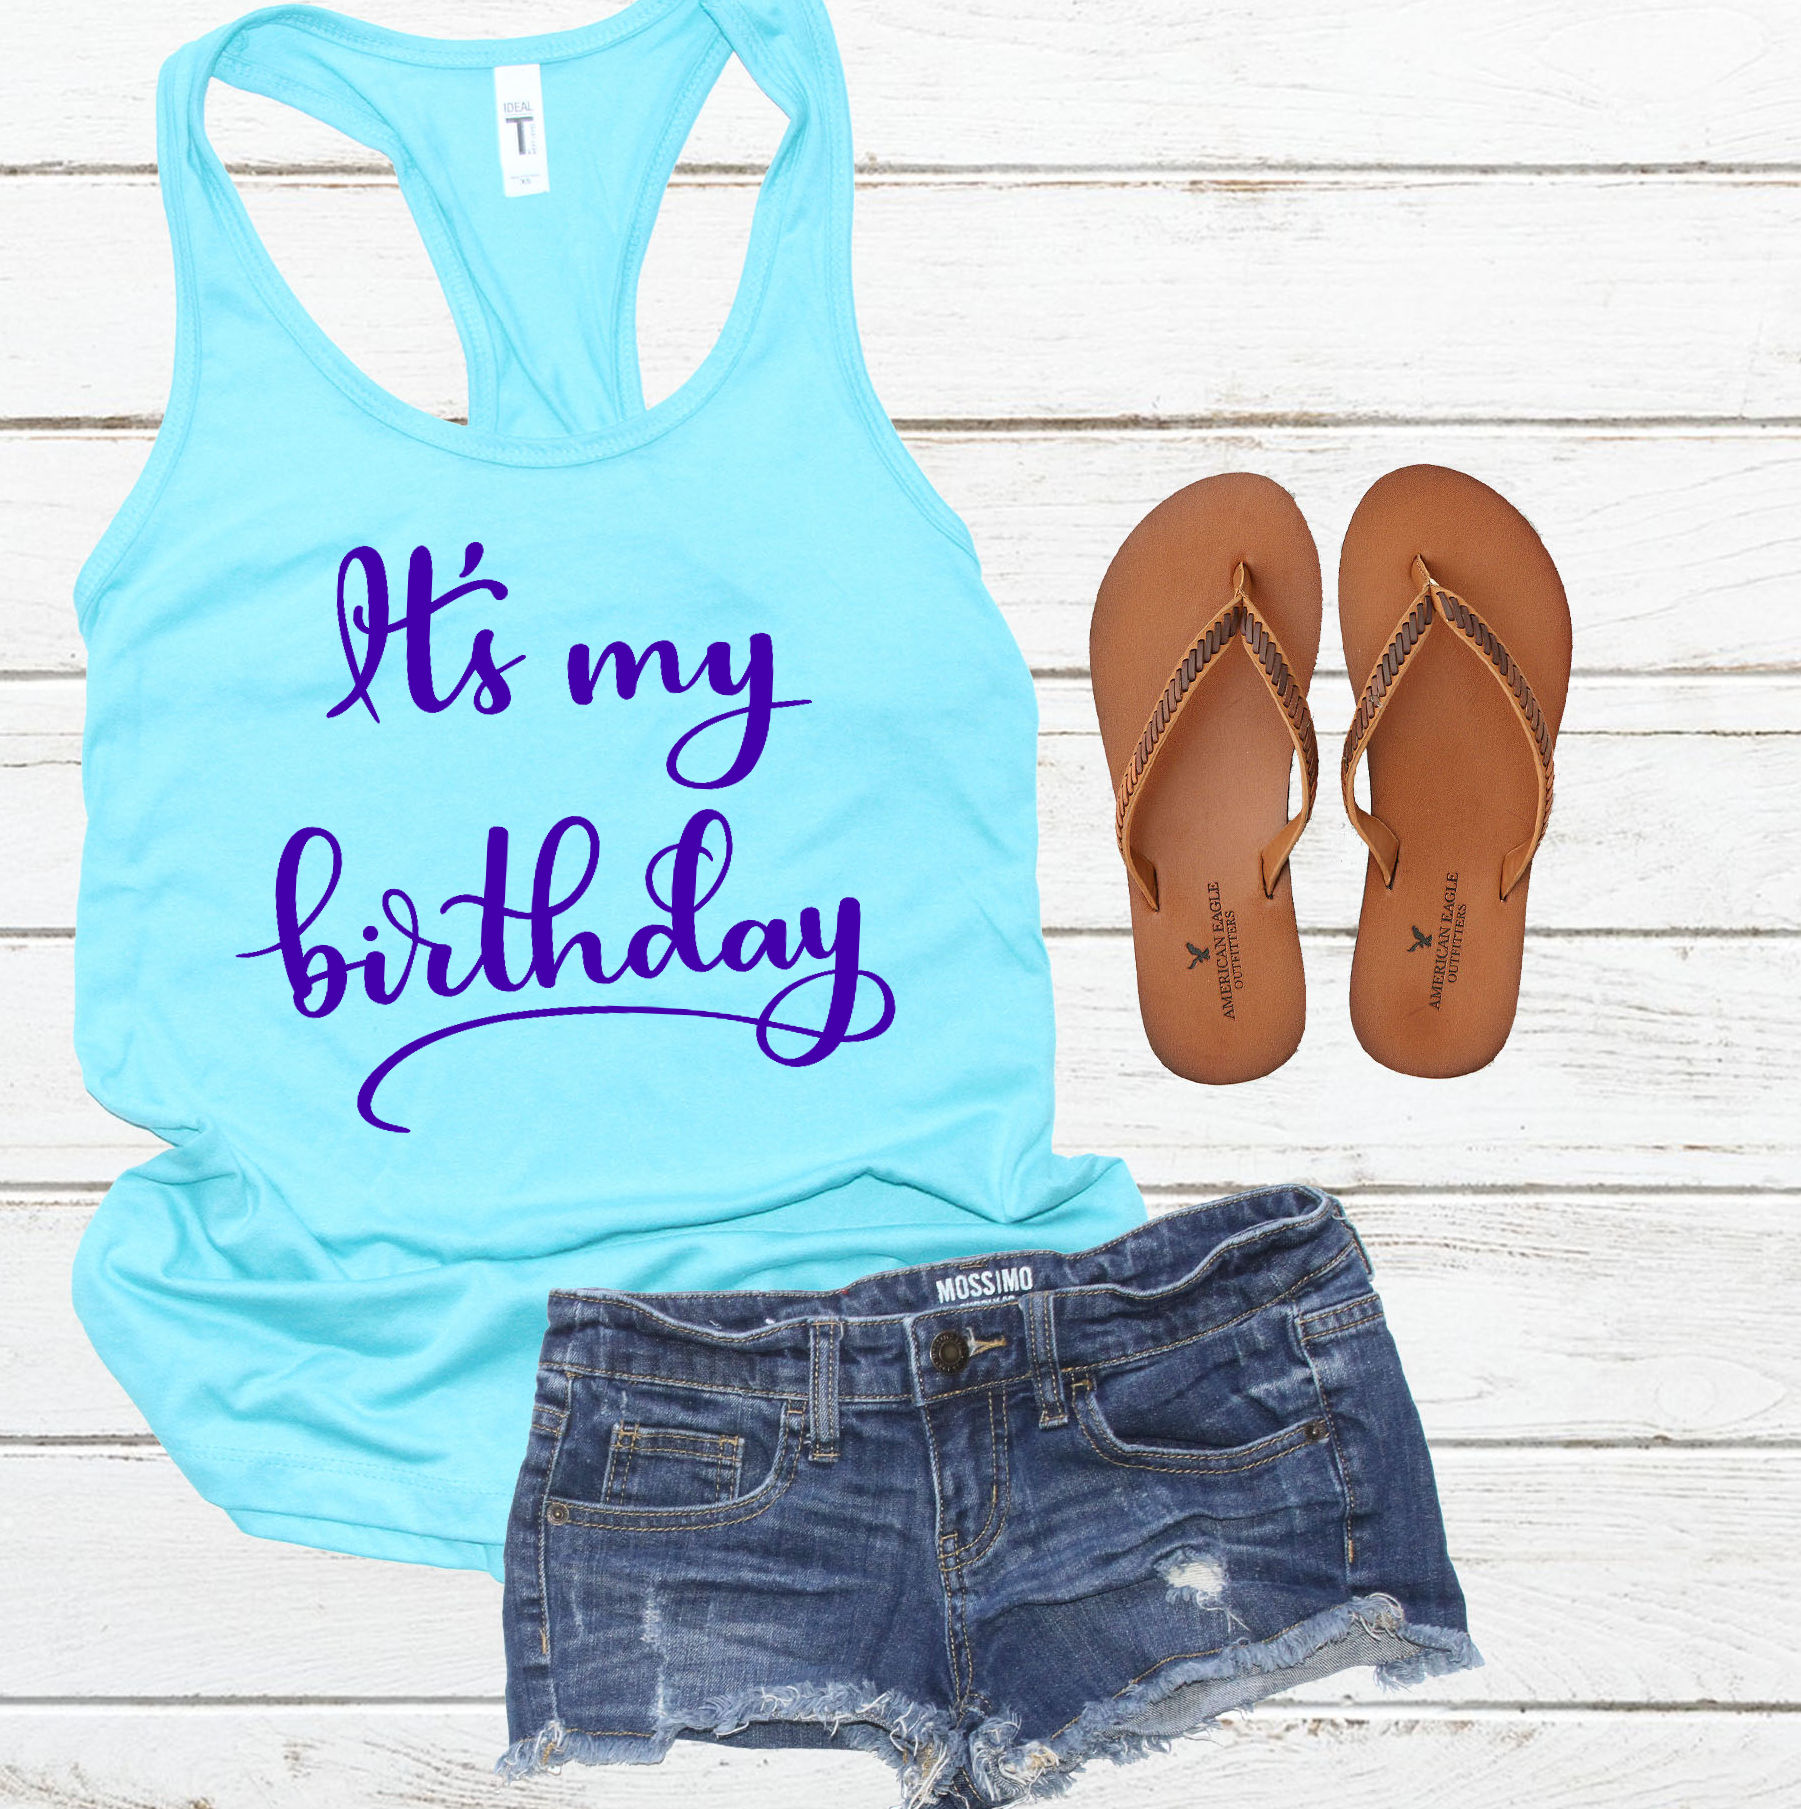 Birthday SVG - It's my birthday cut file, Handlettered example image 2